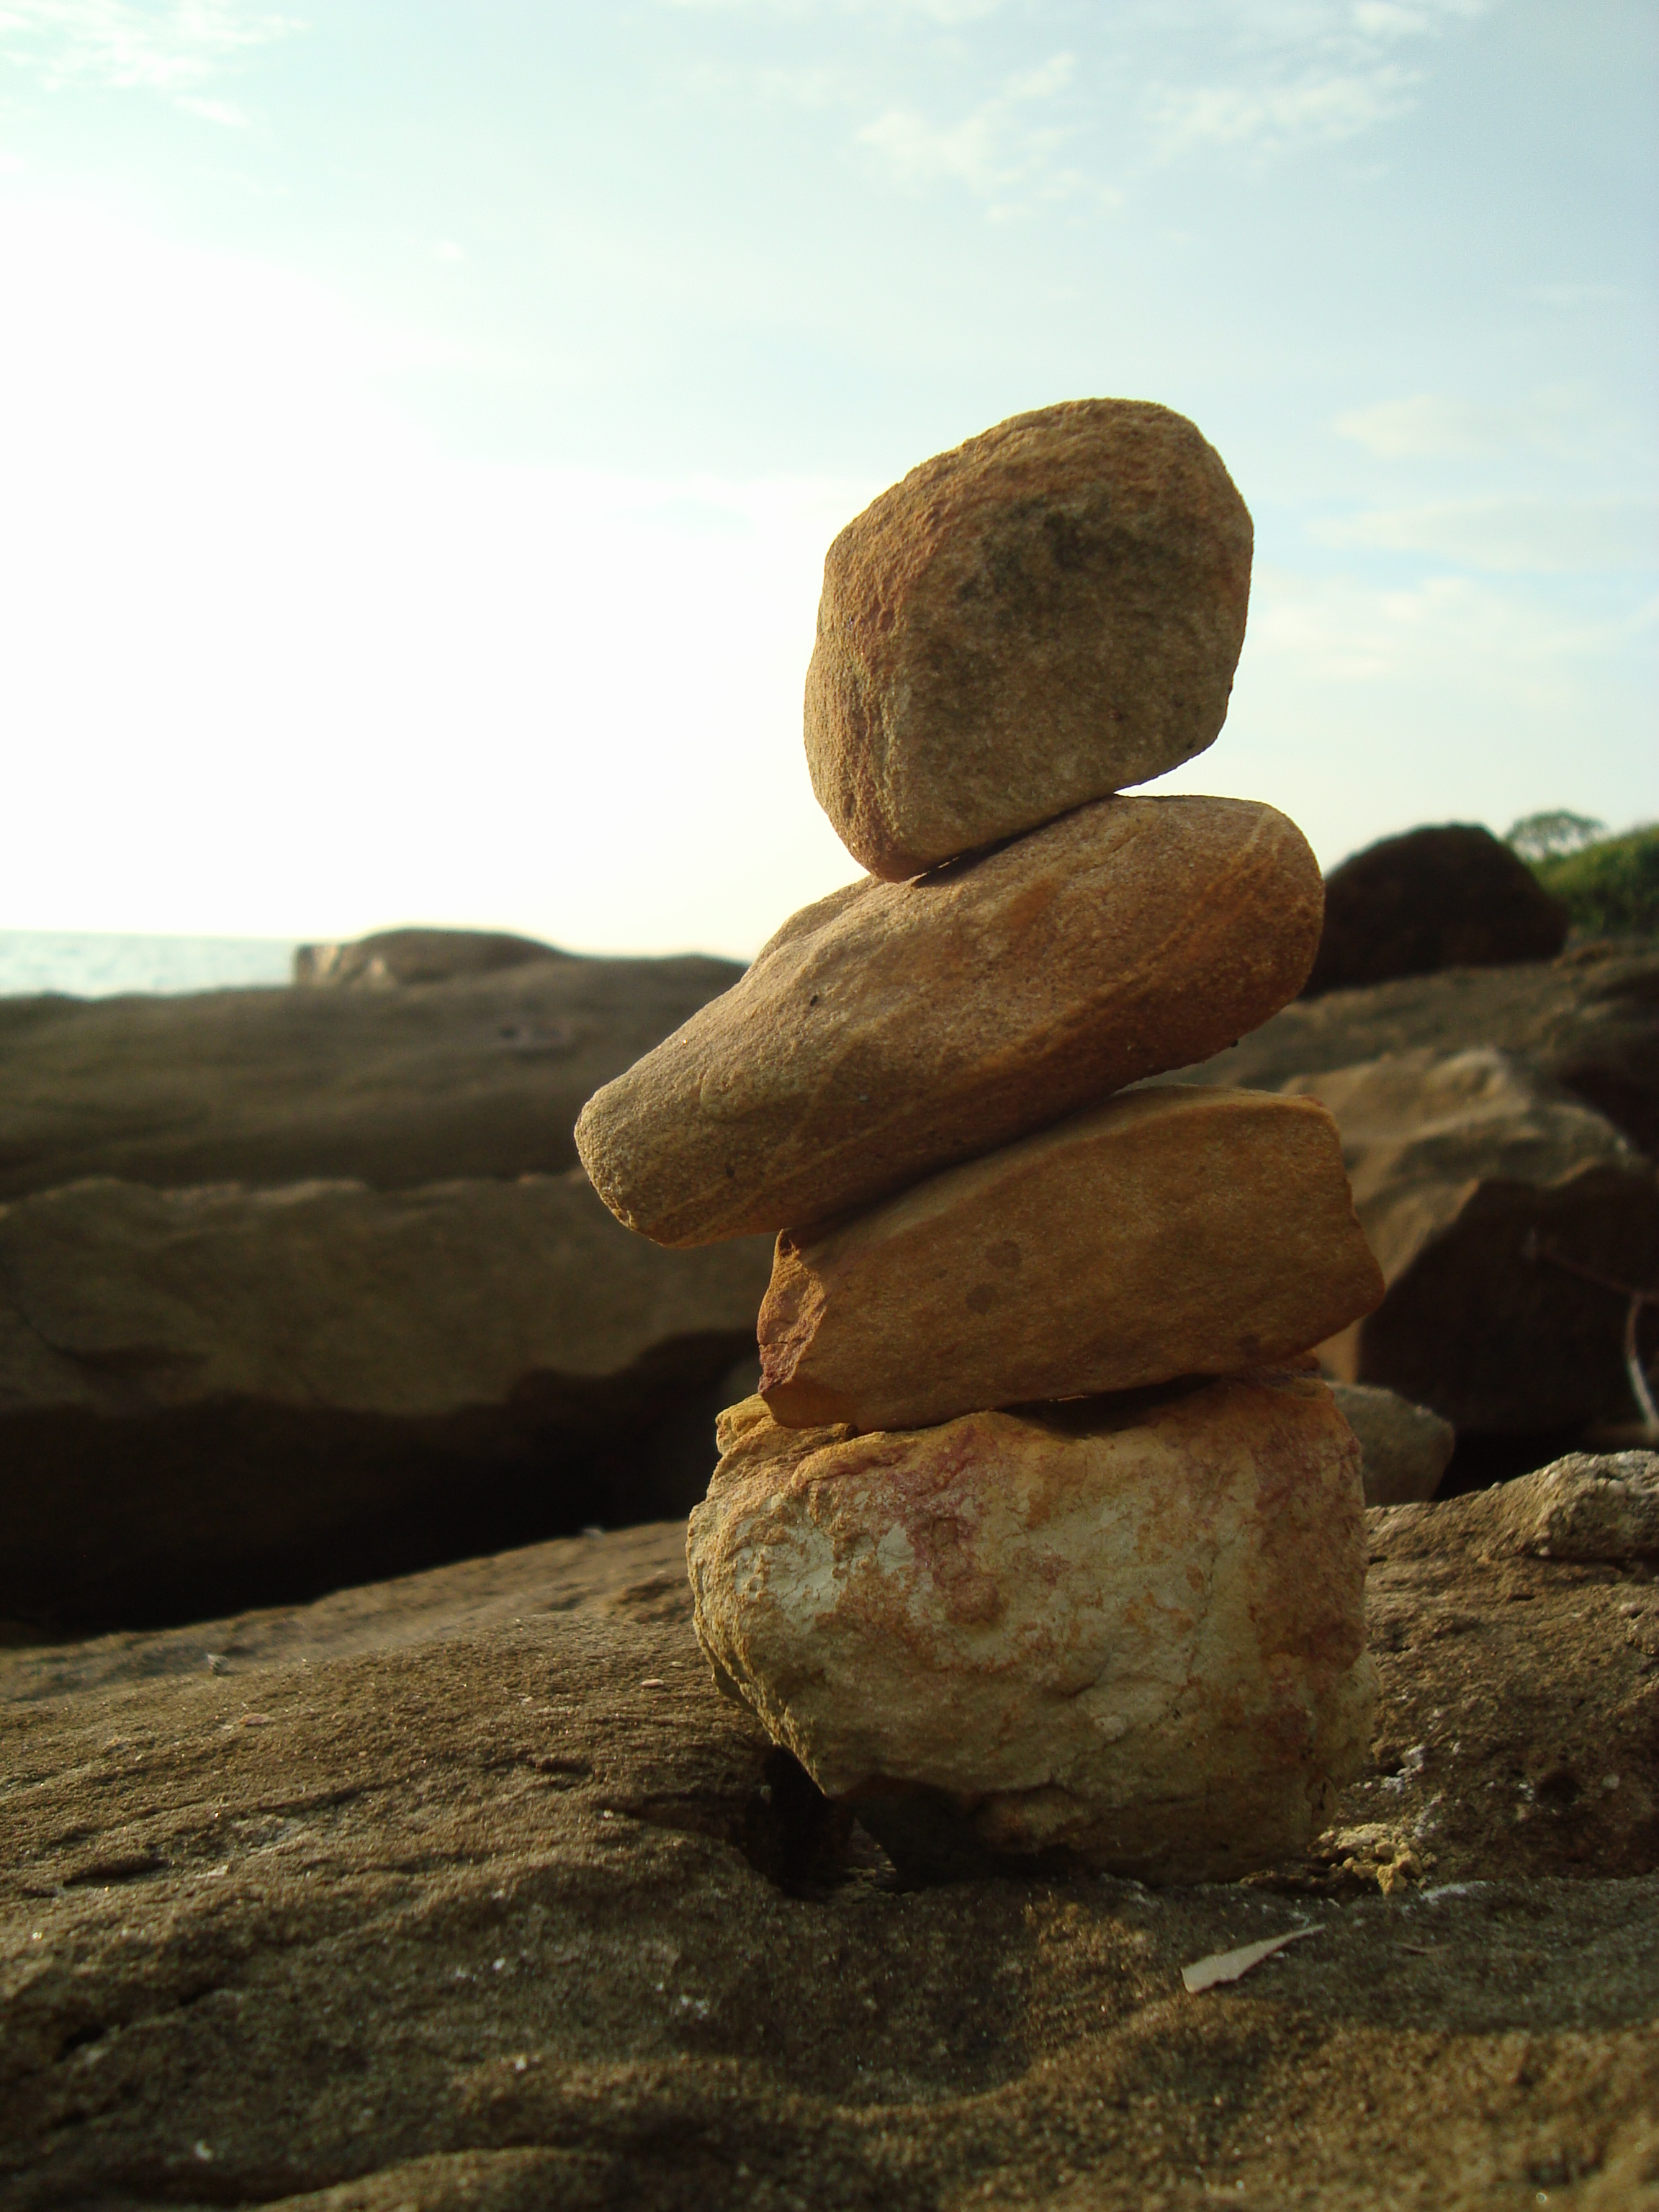 Pebble balance by the sea photo